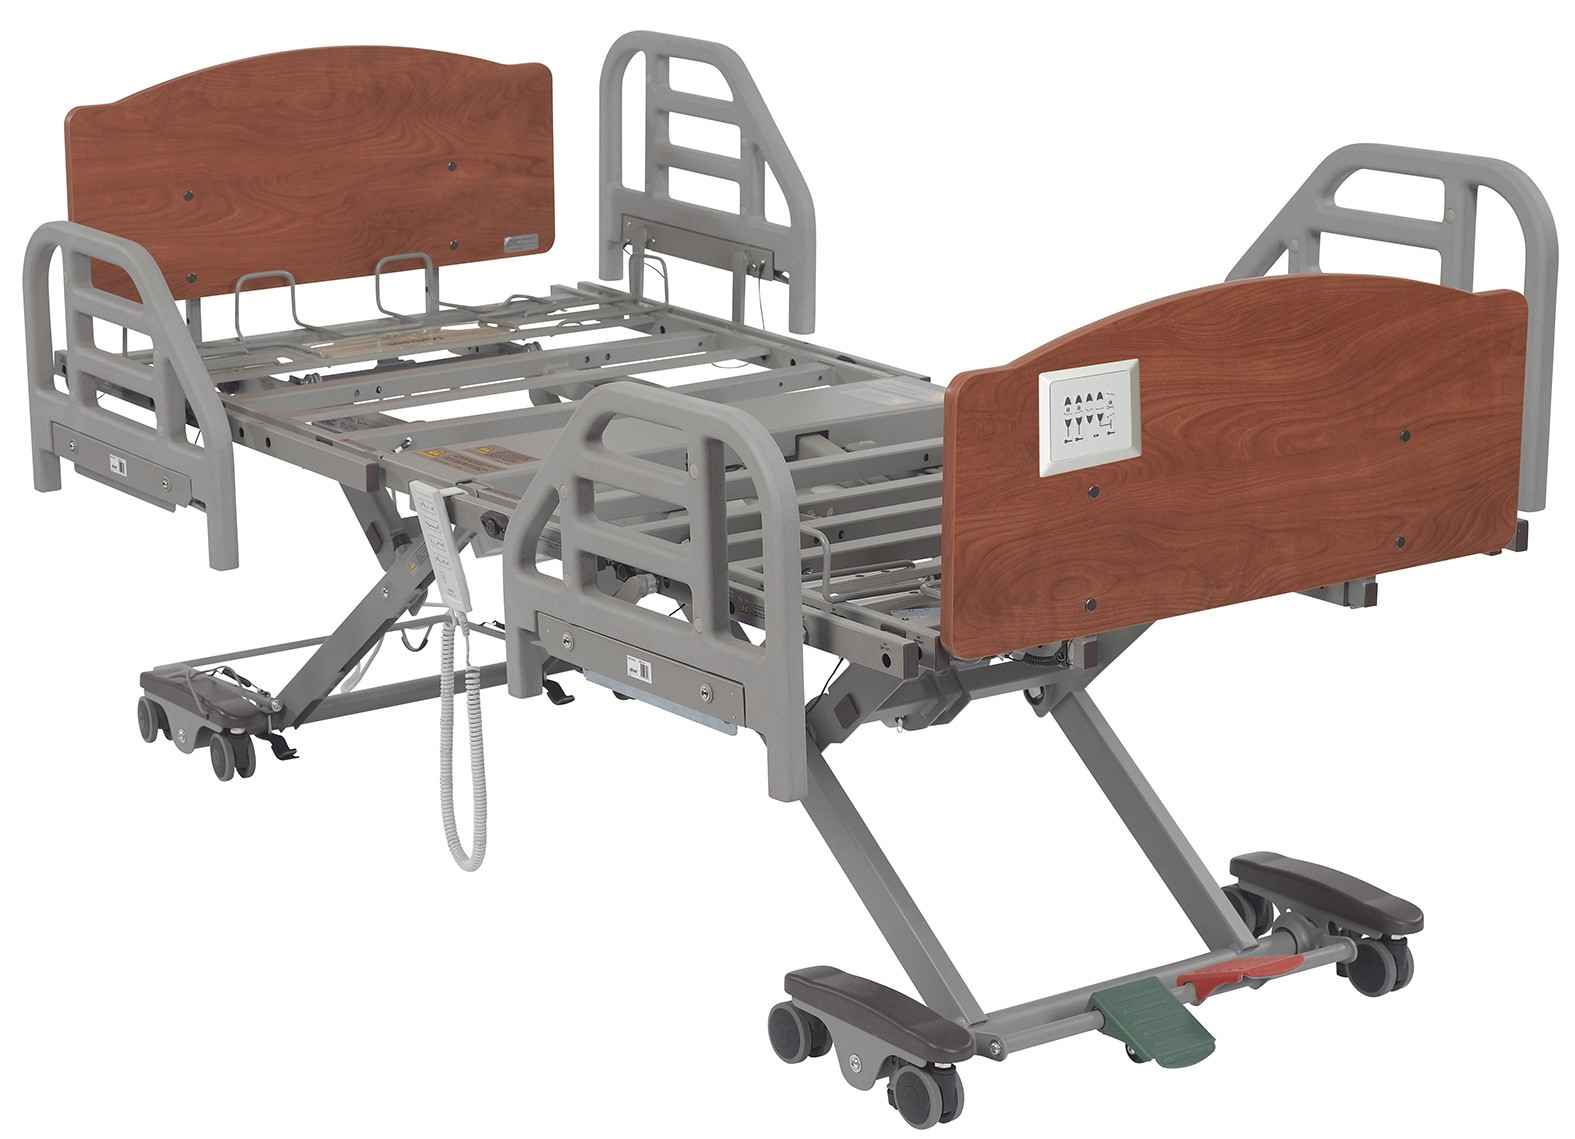 Prime Care Bariatric Bed Frame Medilogix